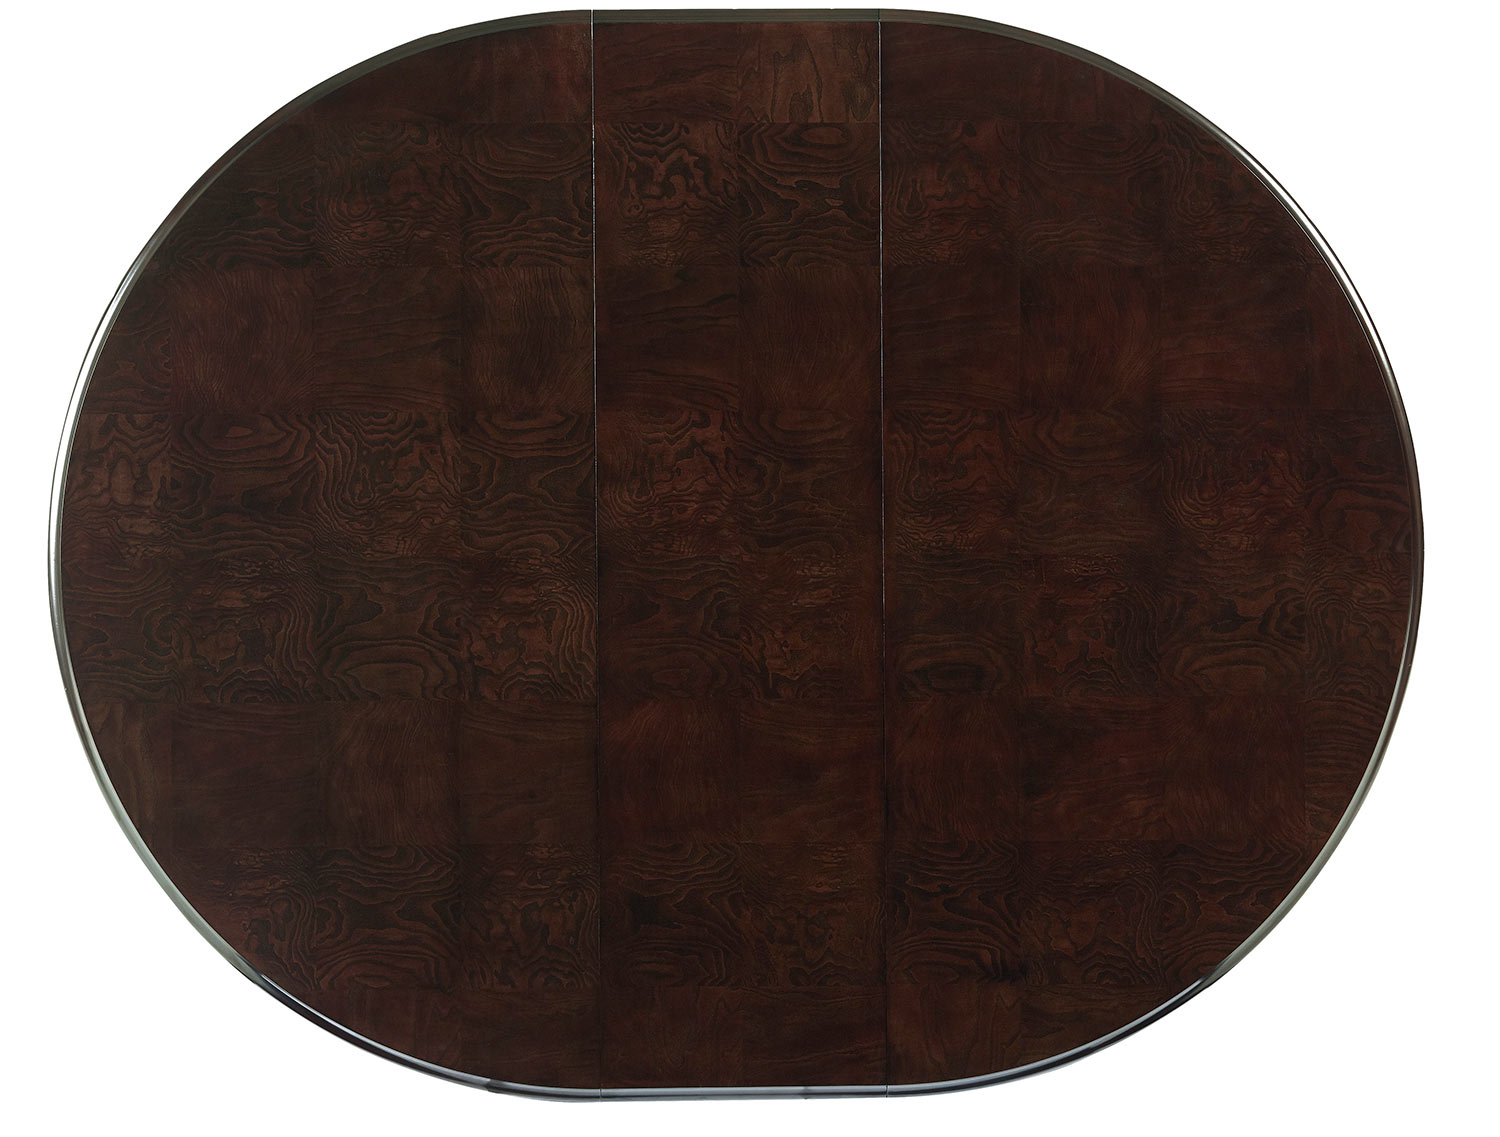 Homelegance Savion Round/Oval Dining Table with Leaf - Espresso